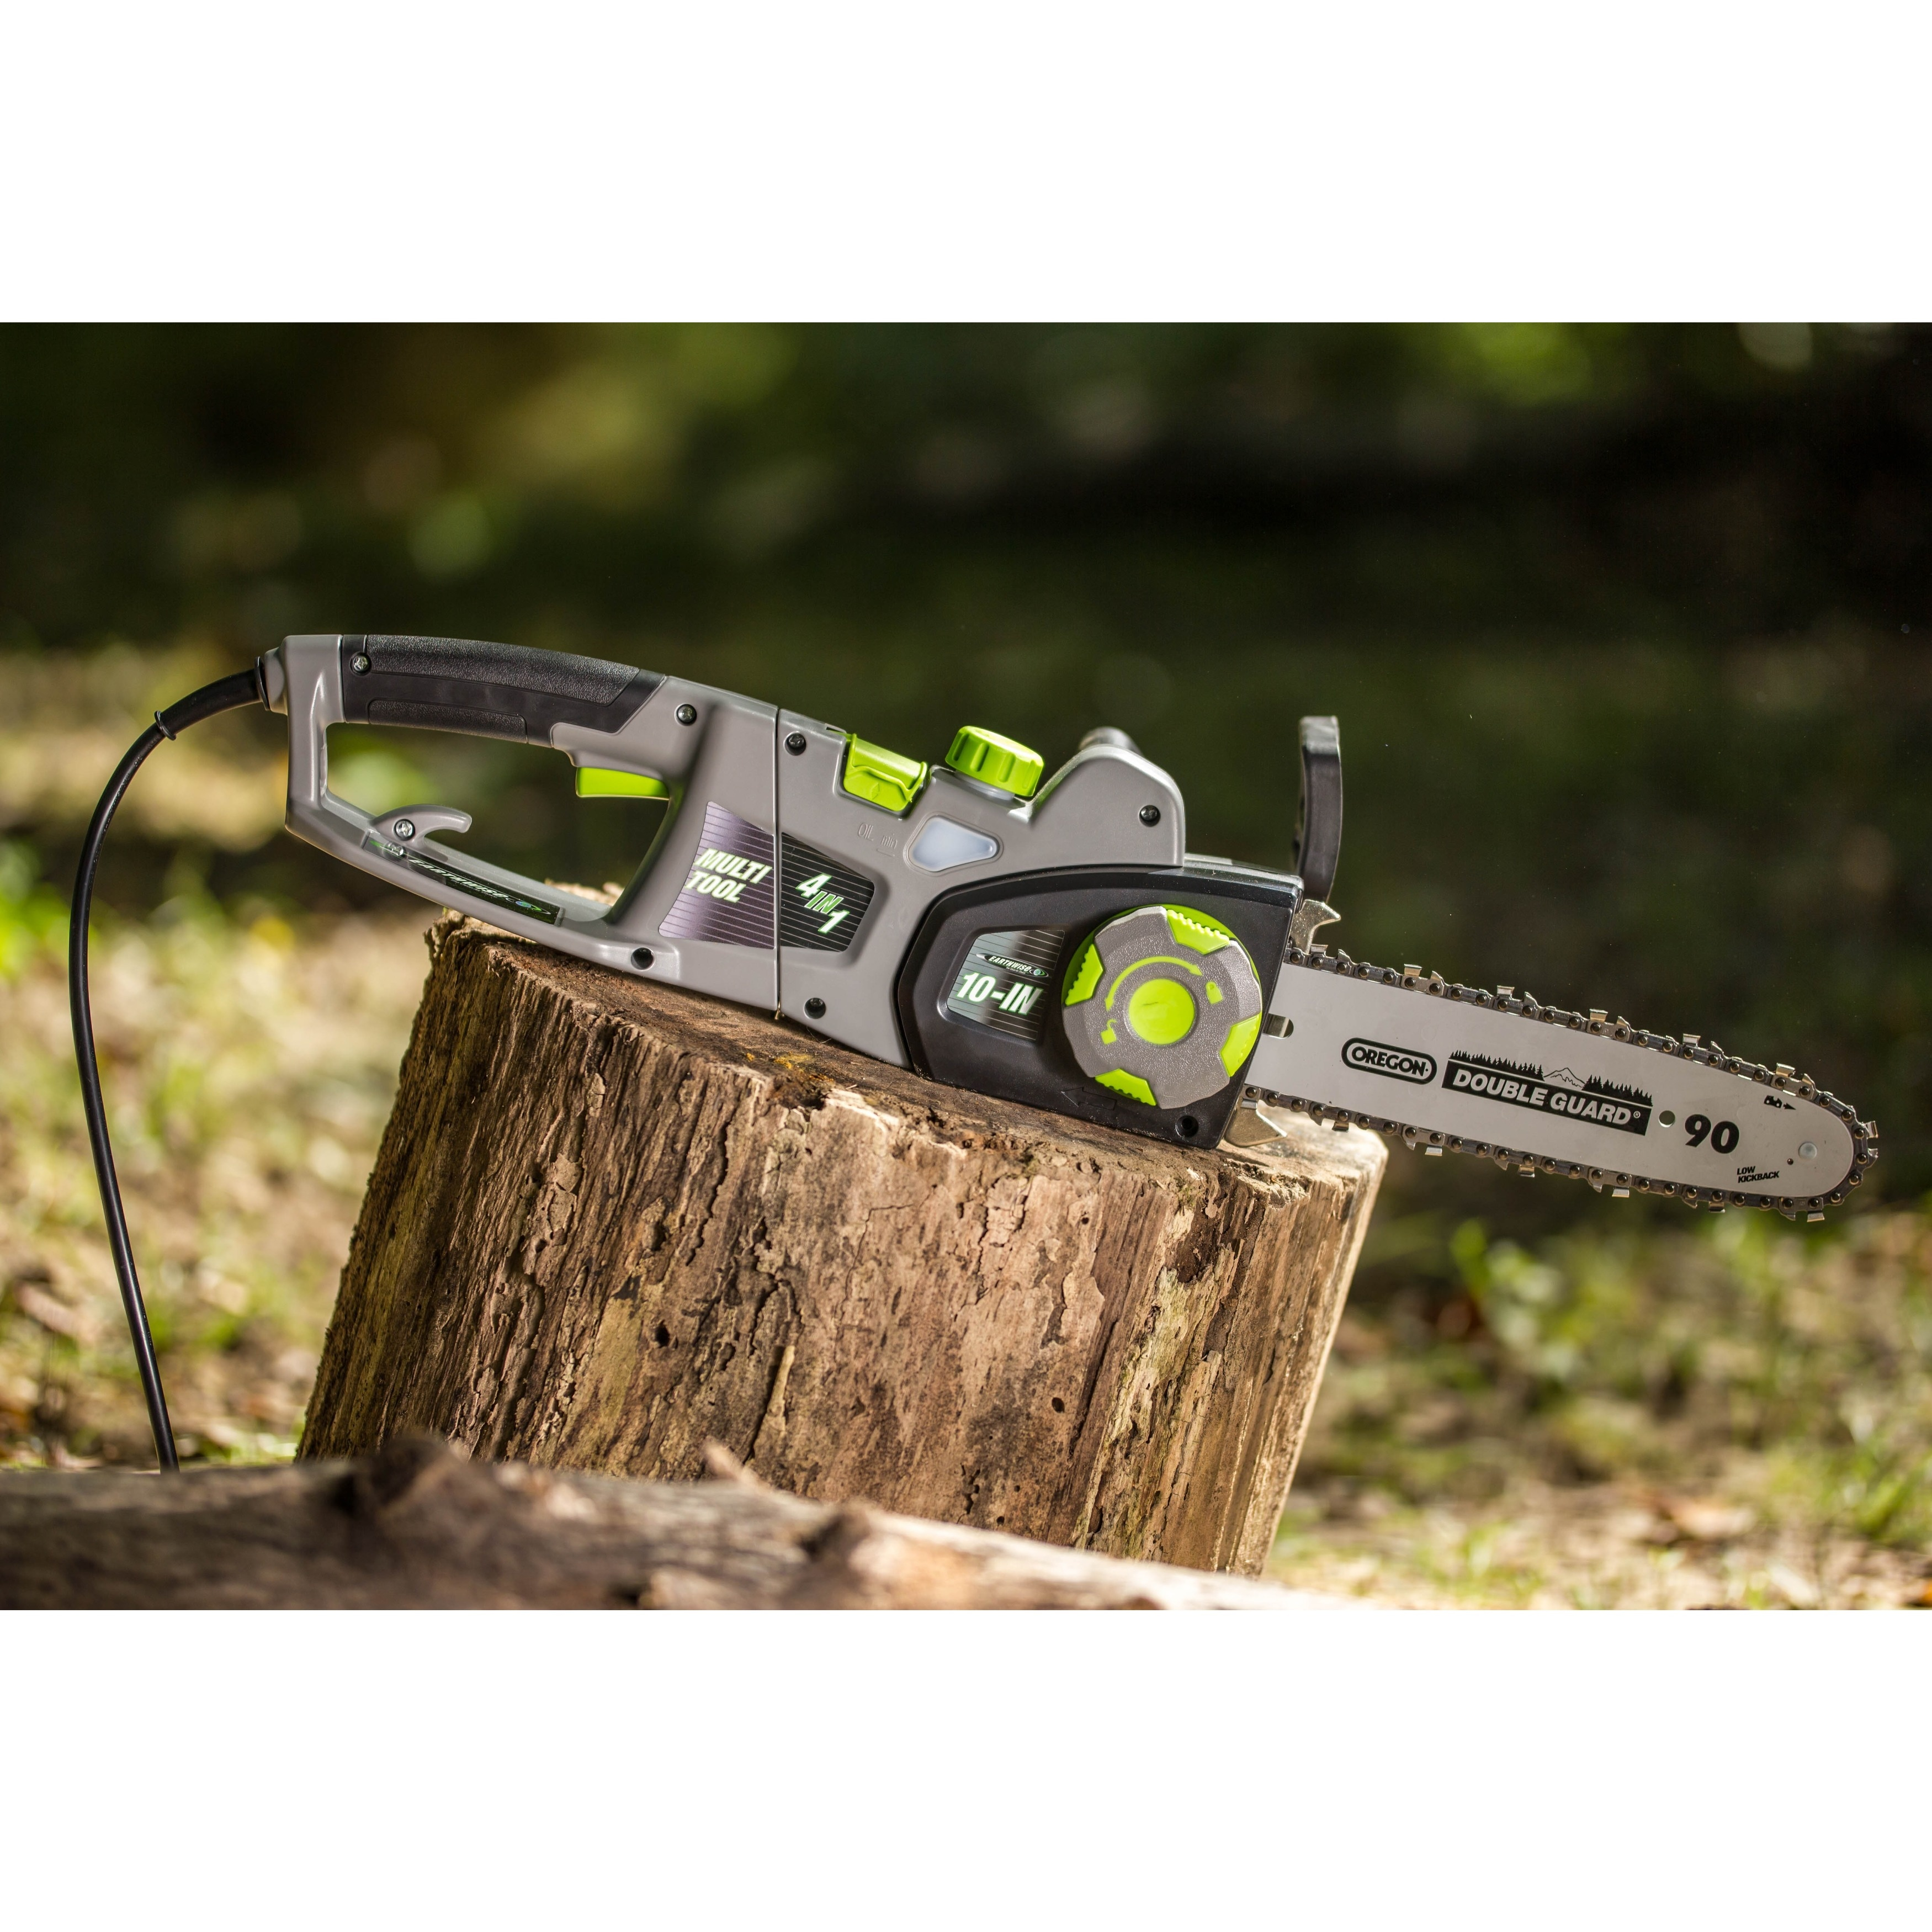 Earthwise 4 in 1 electric chainsaw with pole saw hedge trimmer earthwise 4 in 1 electric chainsaw with pole saw hedge trimmer and pole hedge trimmer free shipping today overstock 20665523 greentooth